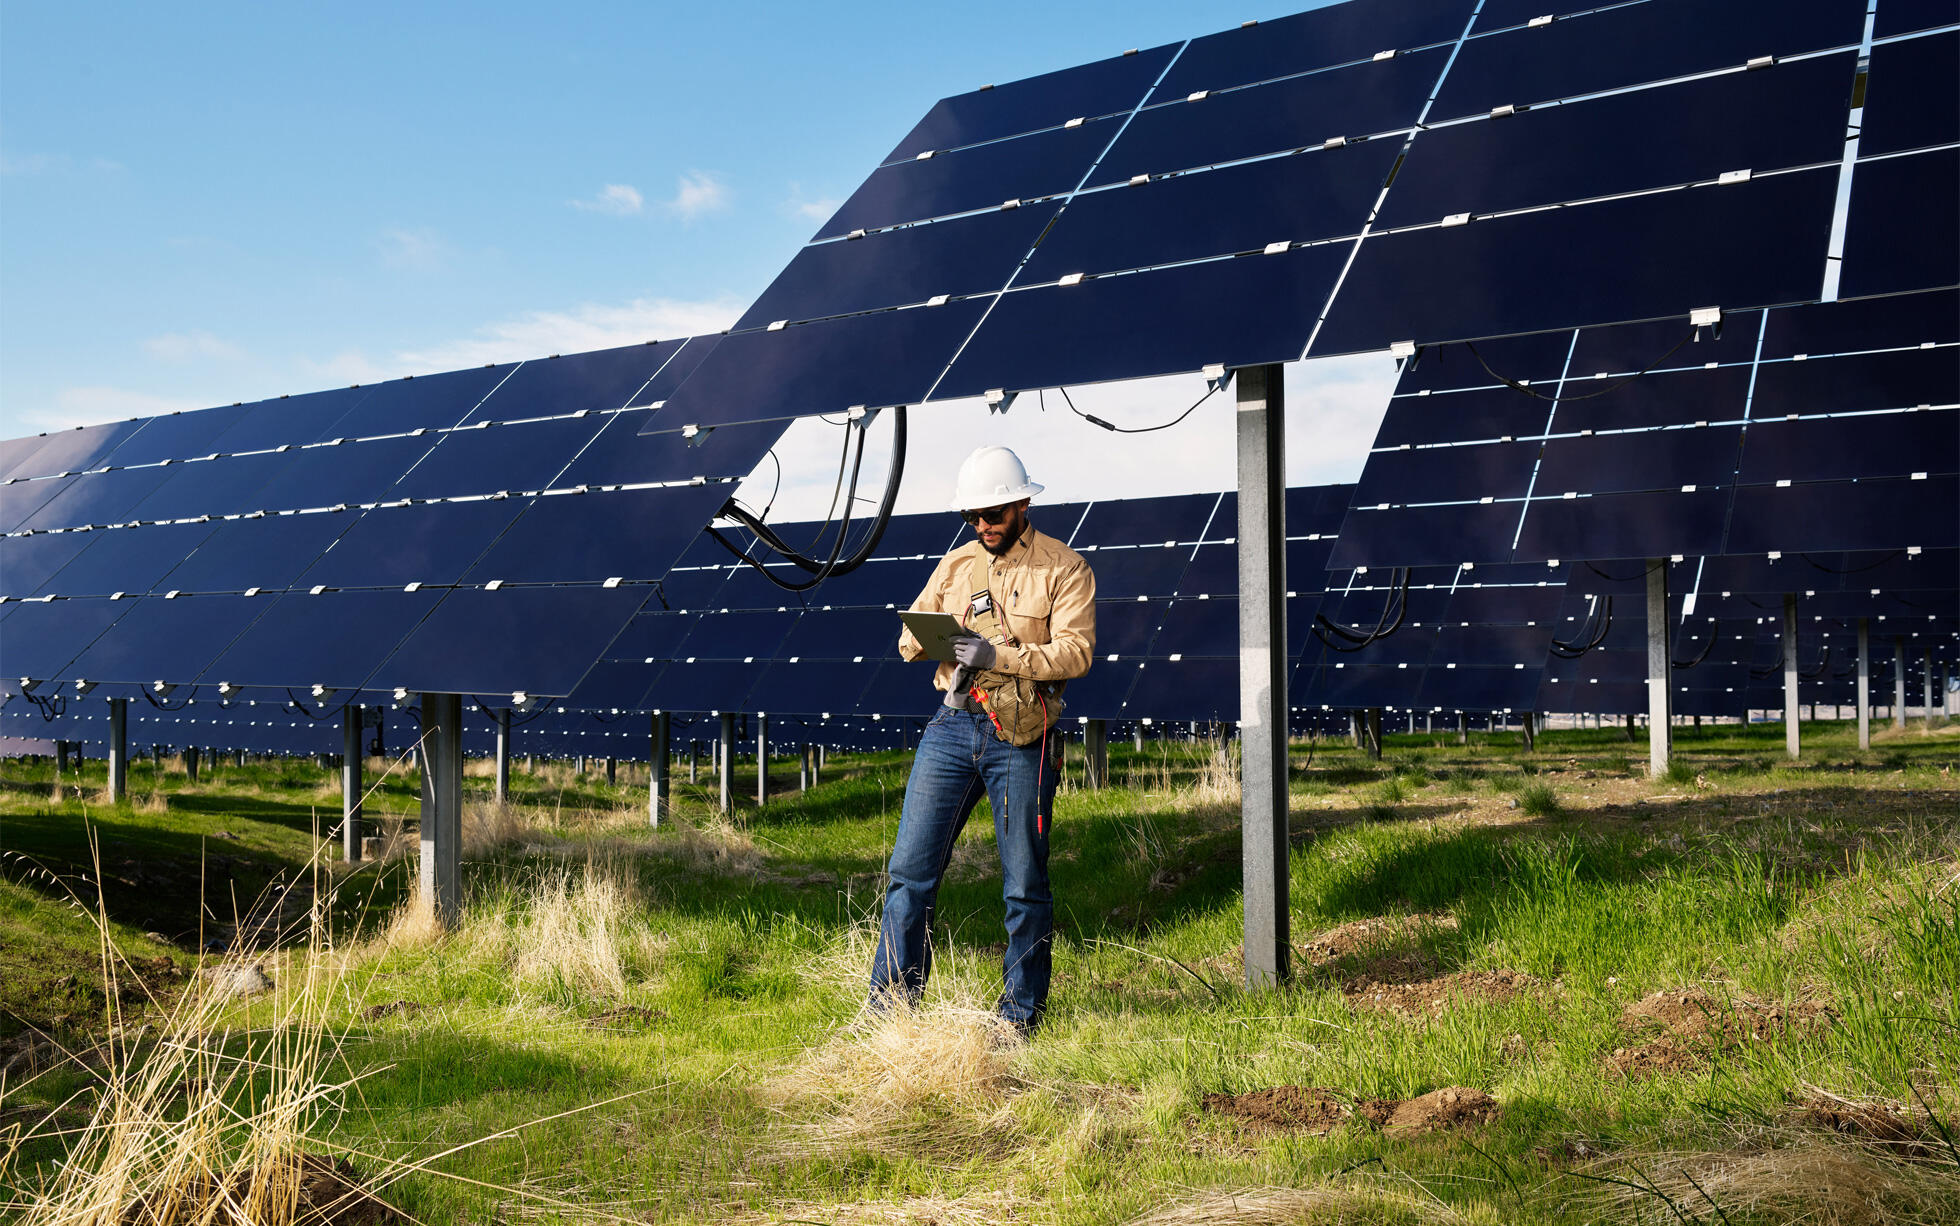 apple-announces-new-climate-efforts-with-over-110-suppliers-transitioning-to-renewable-energy-team-member-near-solar